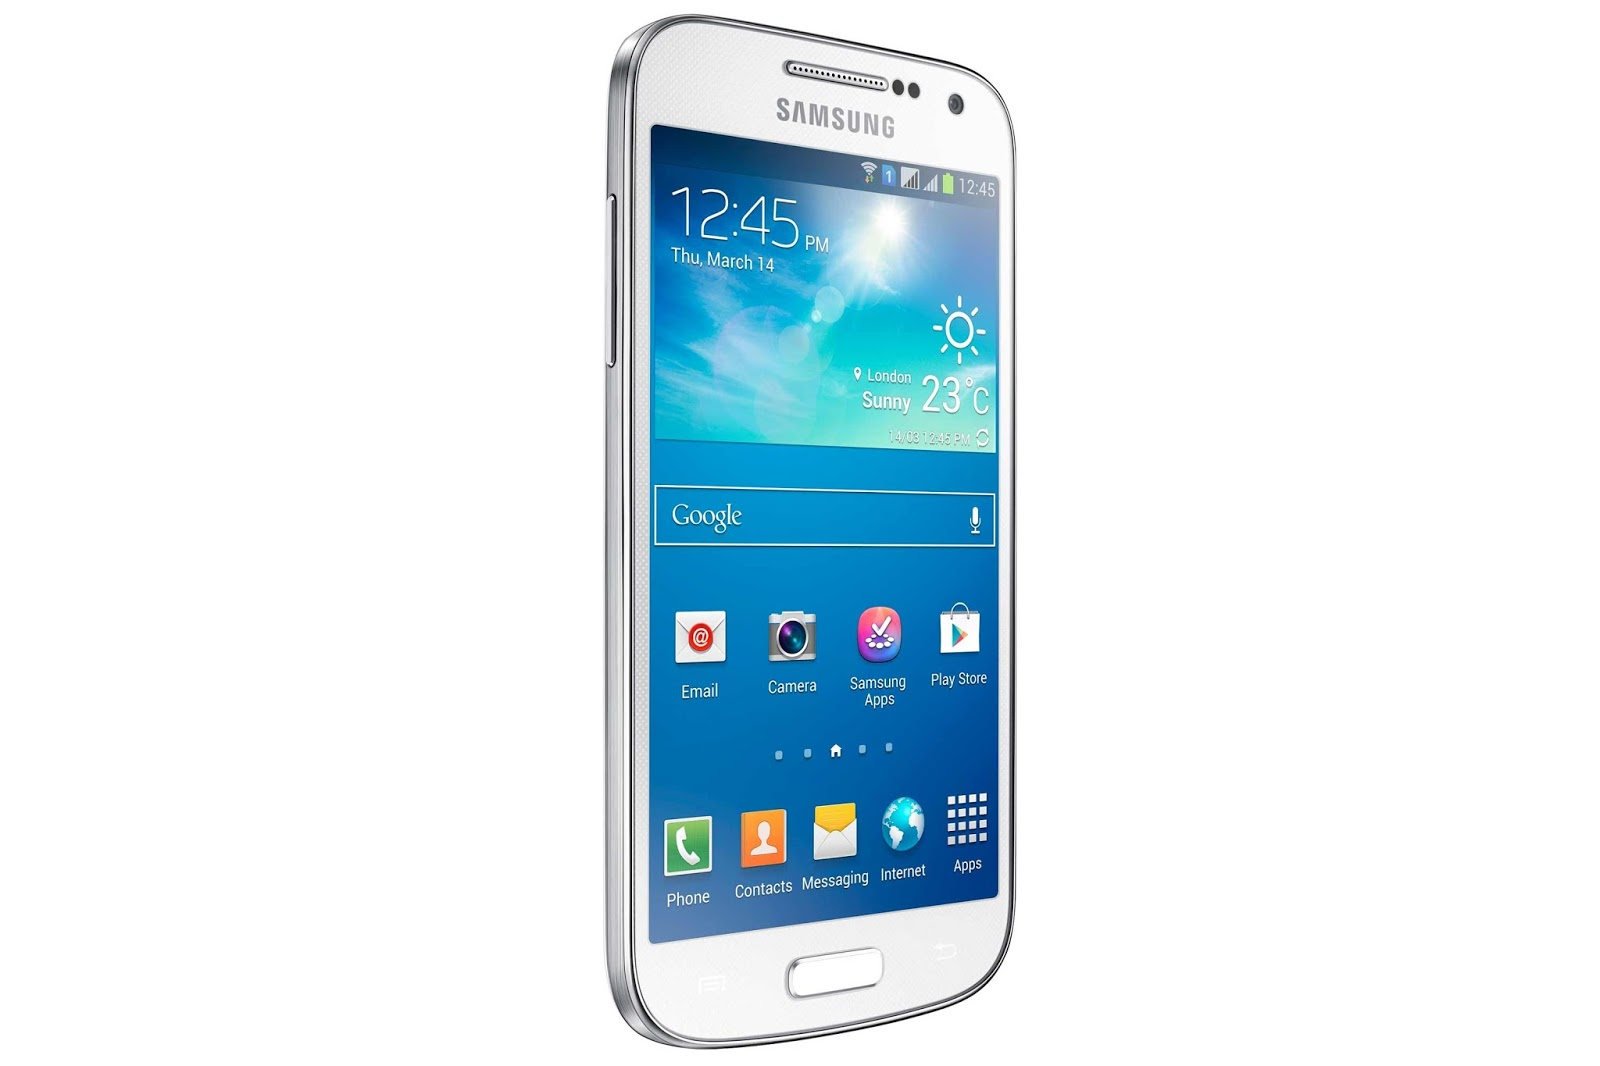 How to root samsung galaxy s4 mini gt i9192 - Samsung Galaxy S4 Mini Gt I9192 Android 4 4 2 Root